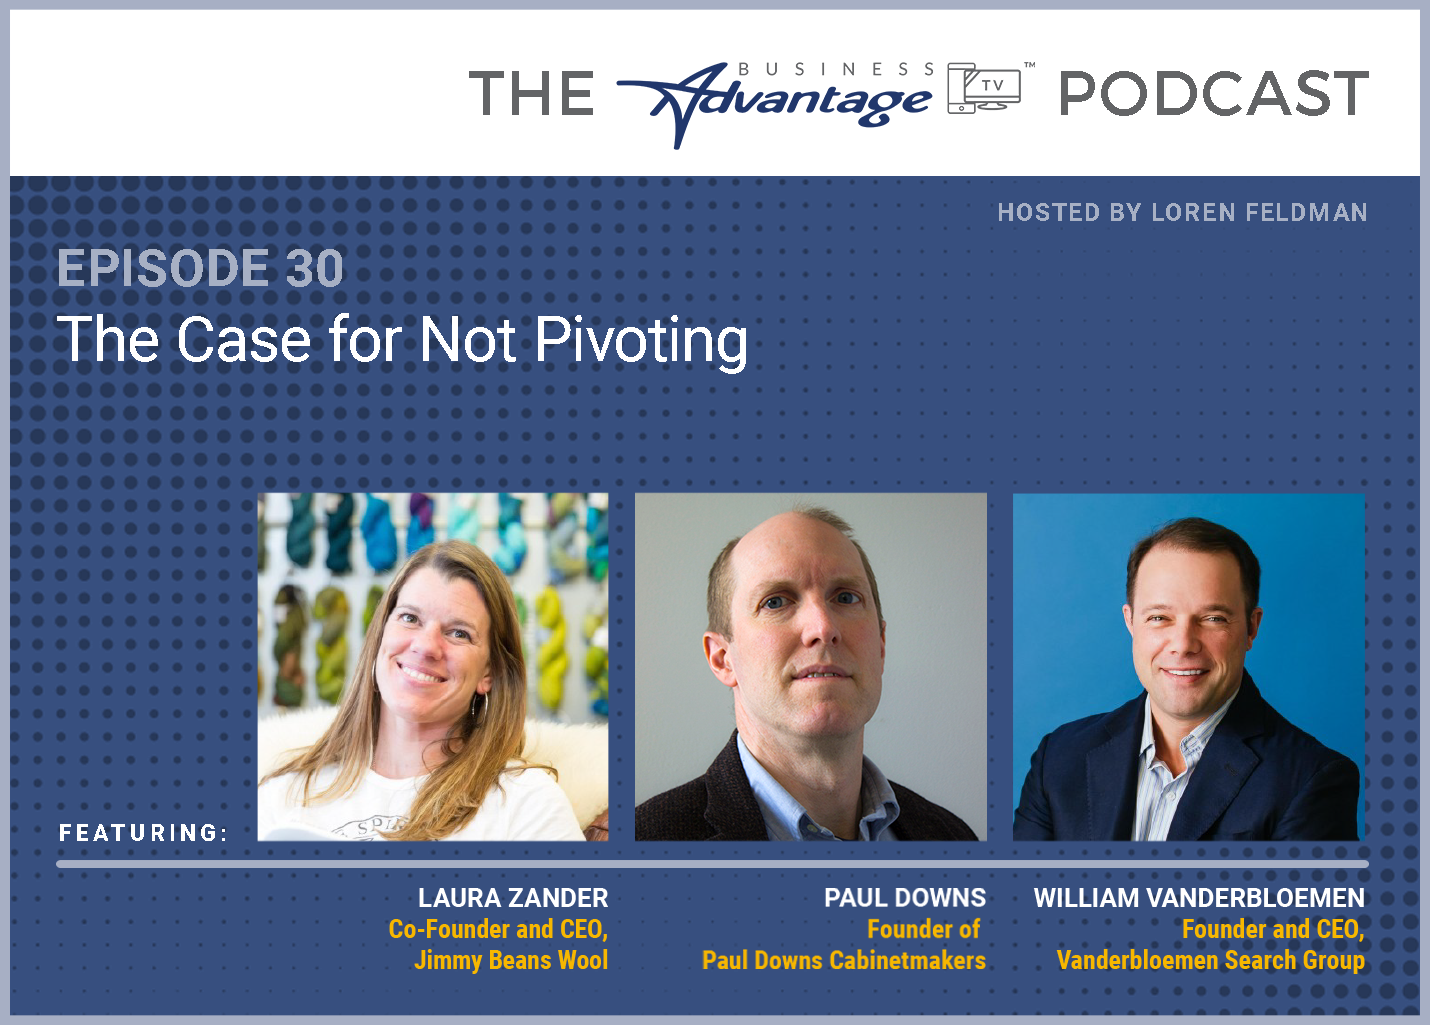 Episode 30: The Case for Not Pivoting